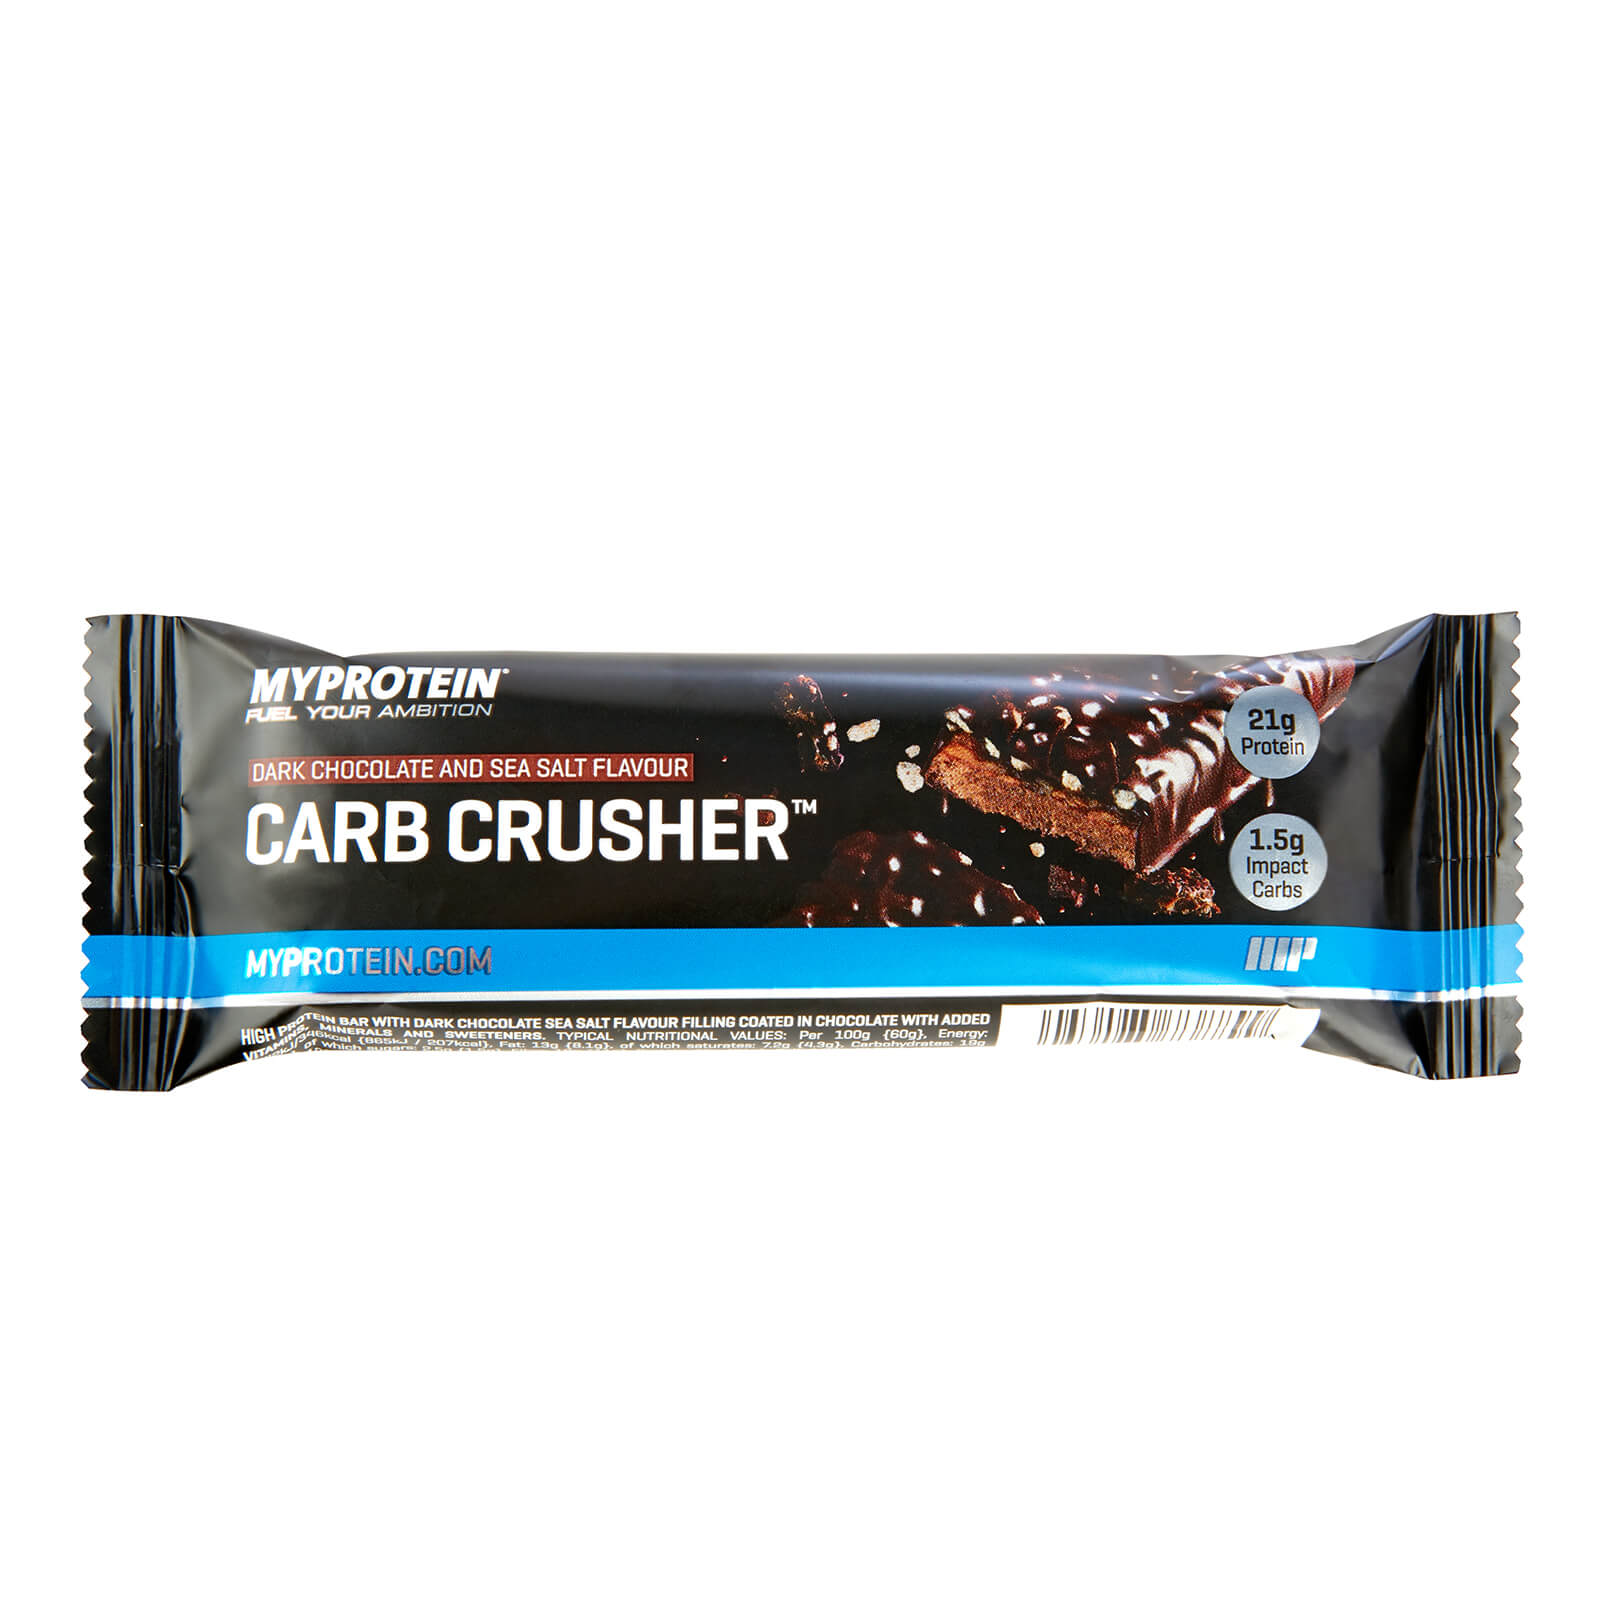 Carb Crusher, Dark Chocolate and Sea Salt, 60g (Sample)